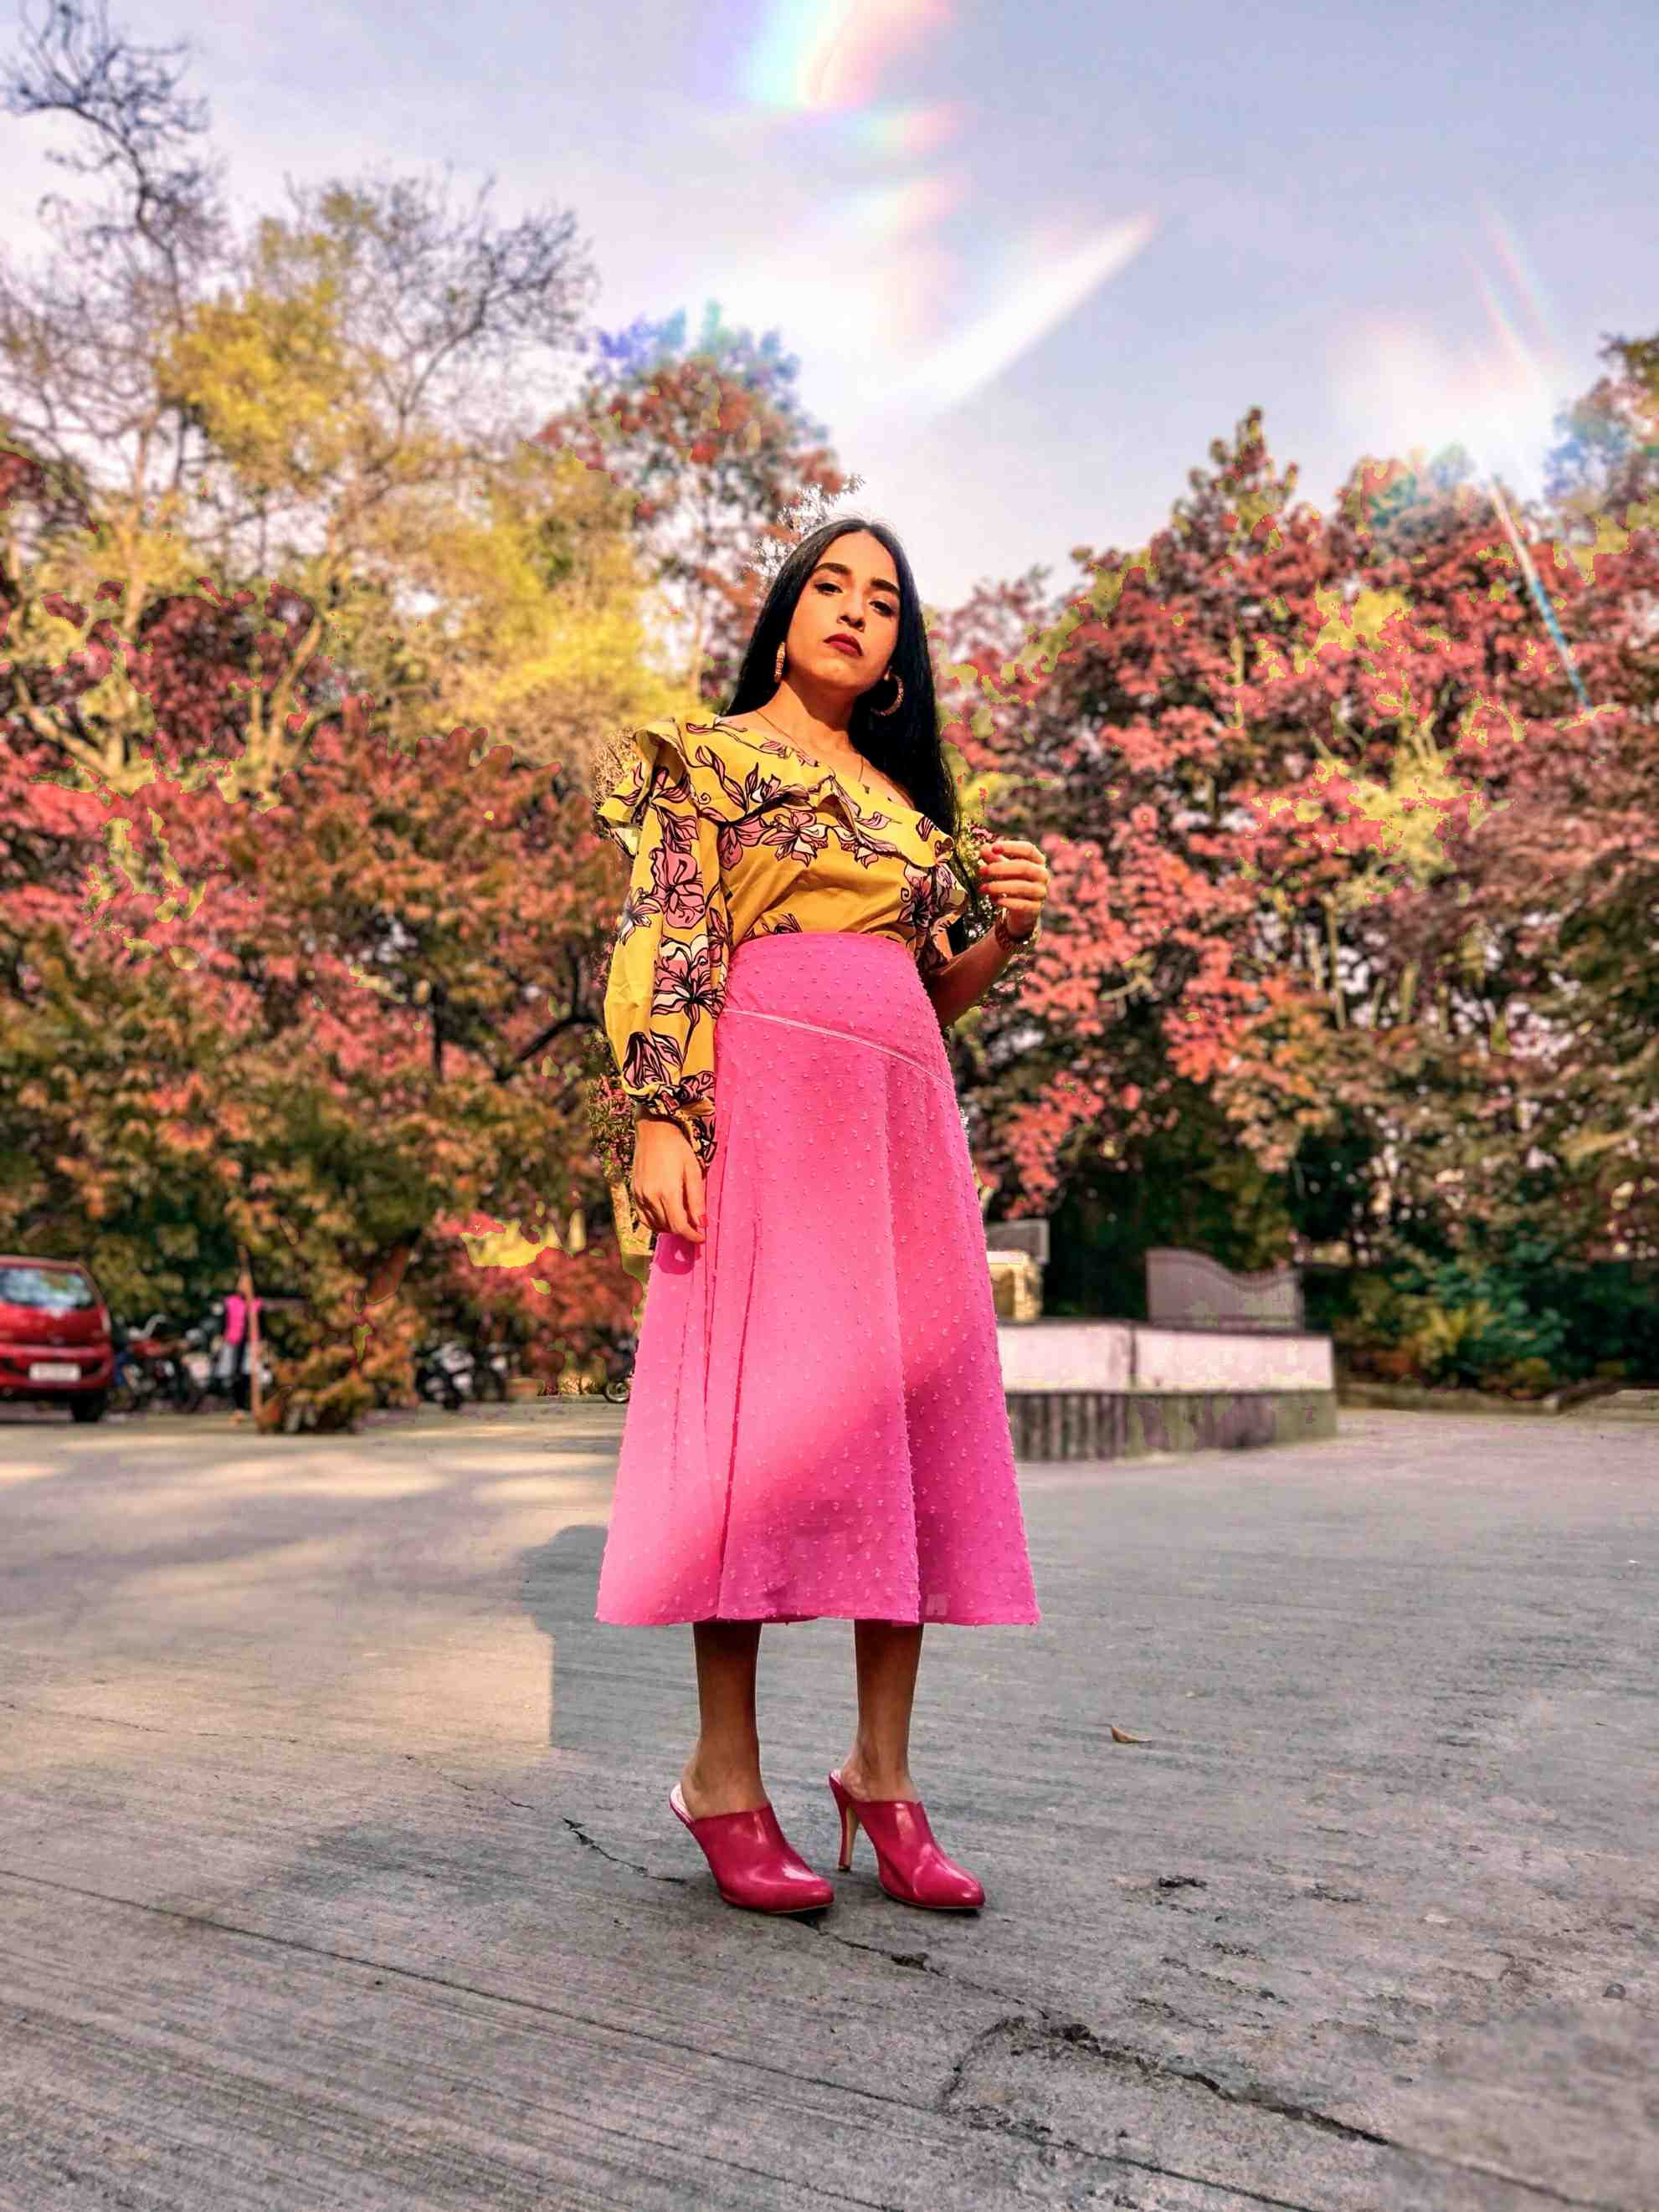 pink skirt, printed bodysuit, yellow on pink , floral prints, pink mules, outfit ideas, ootd, street style